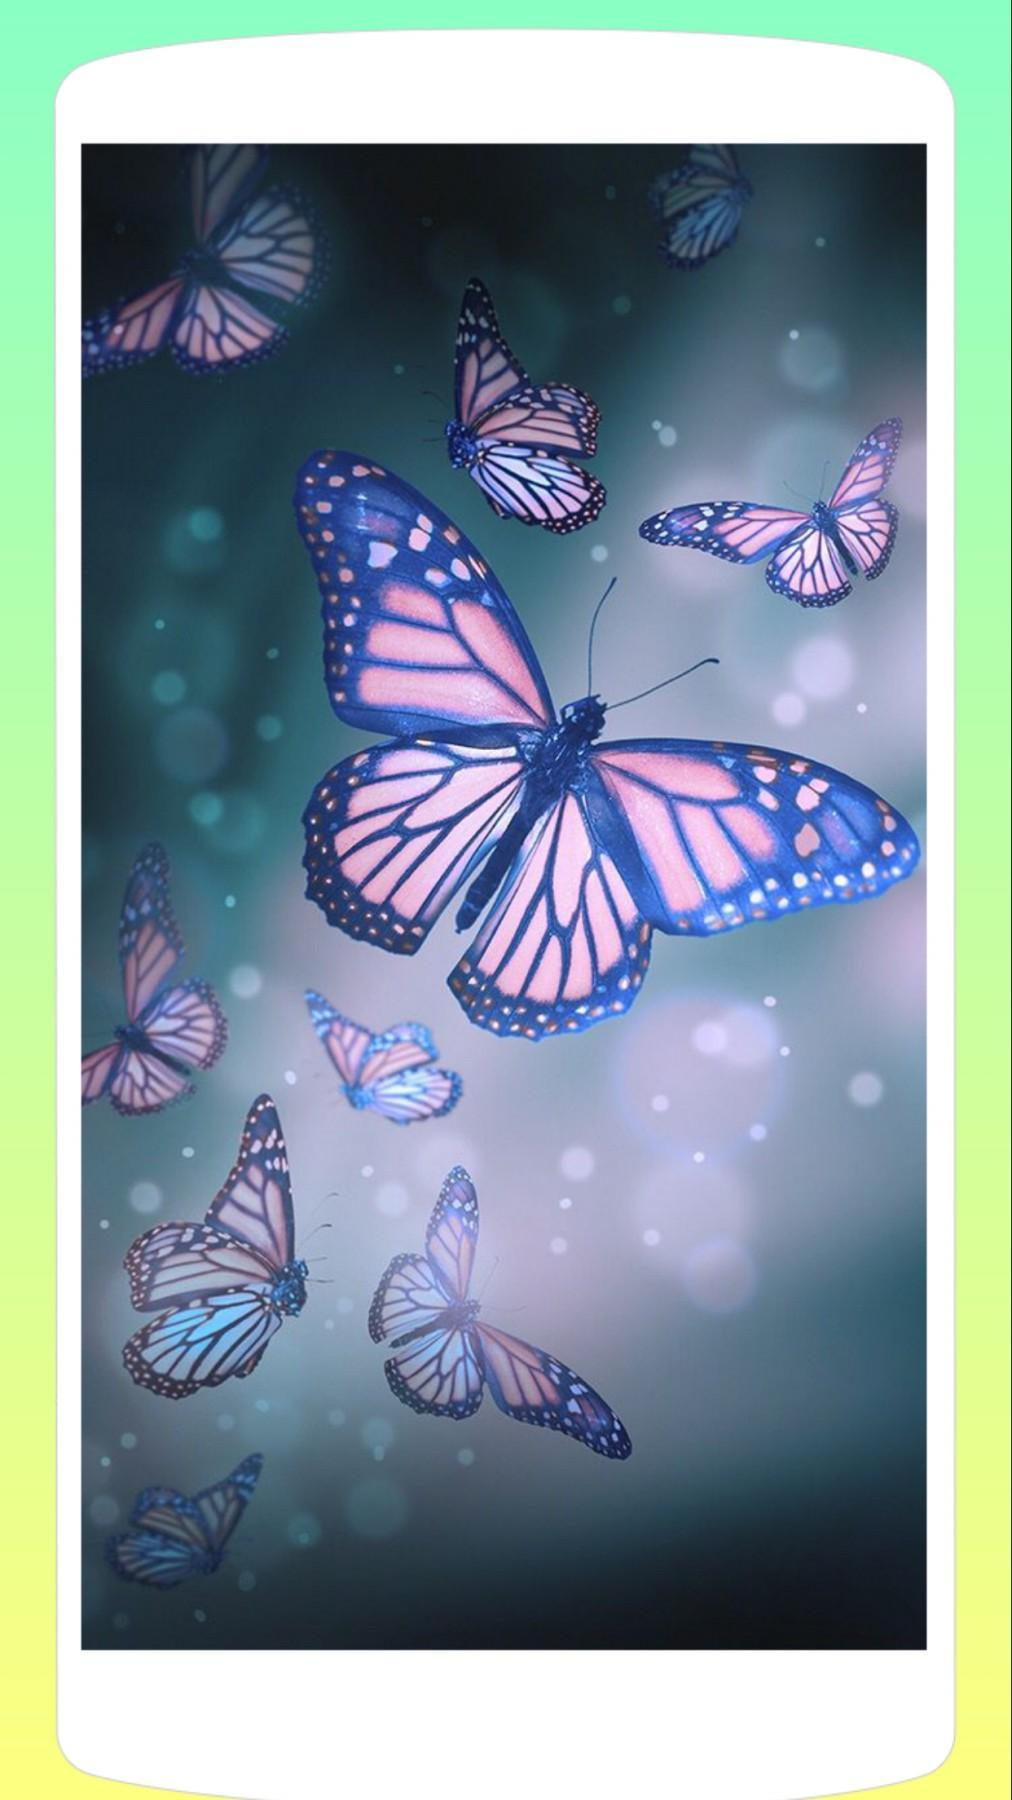 Butterfly Wallpaper Hd 4k For Android Apk Download